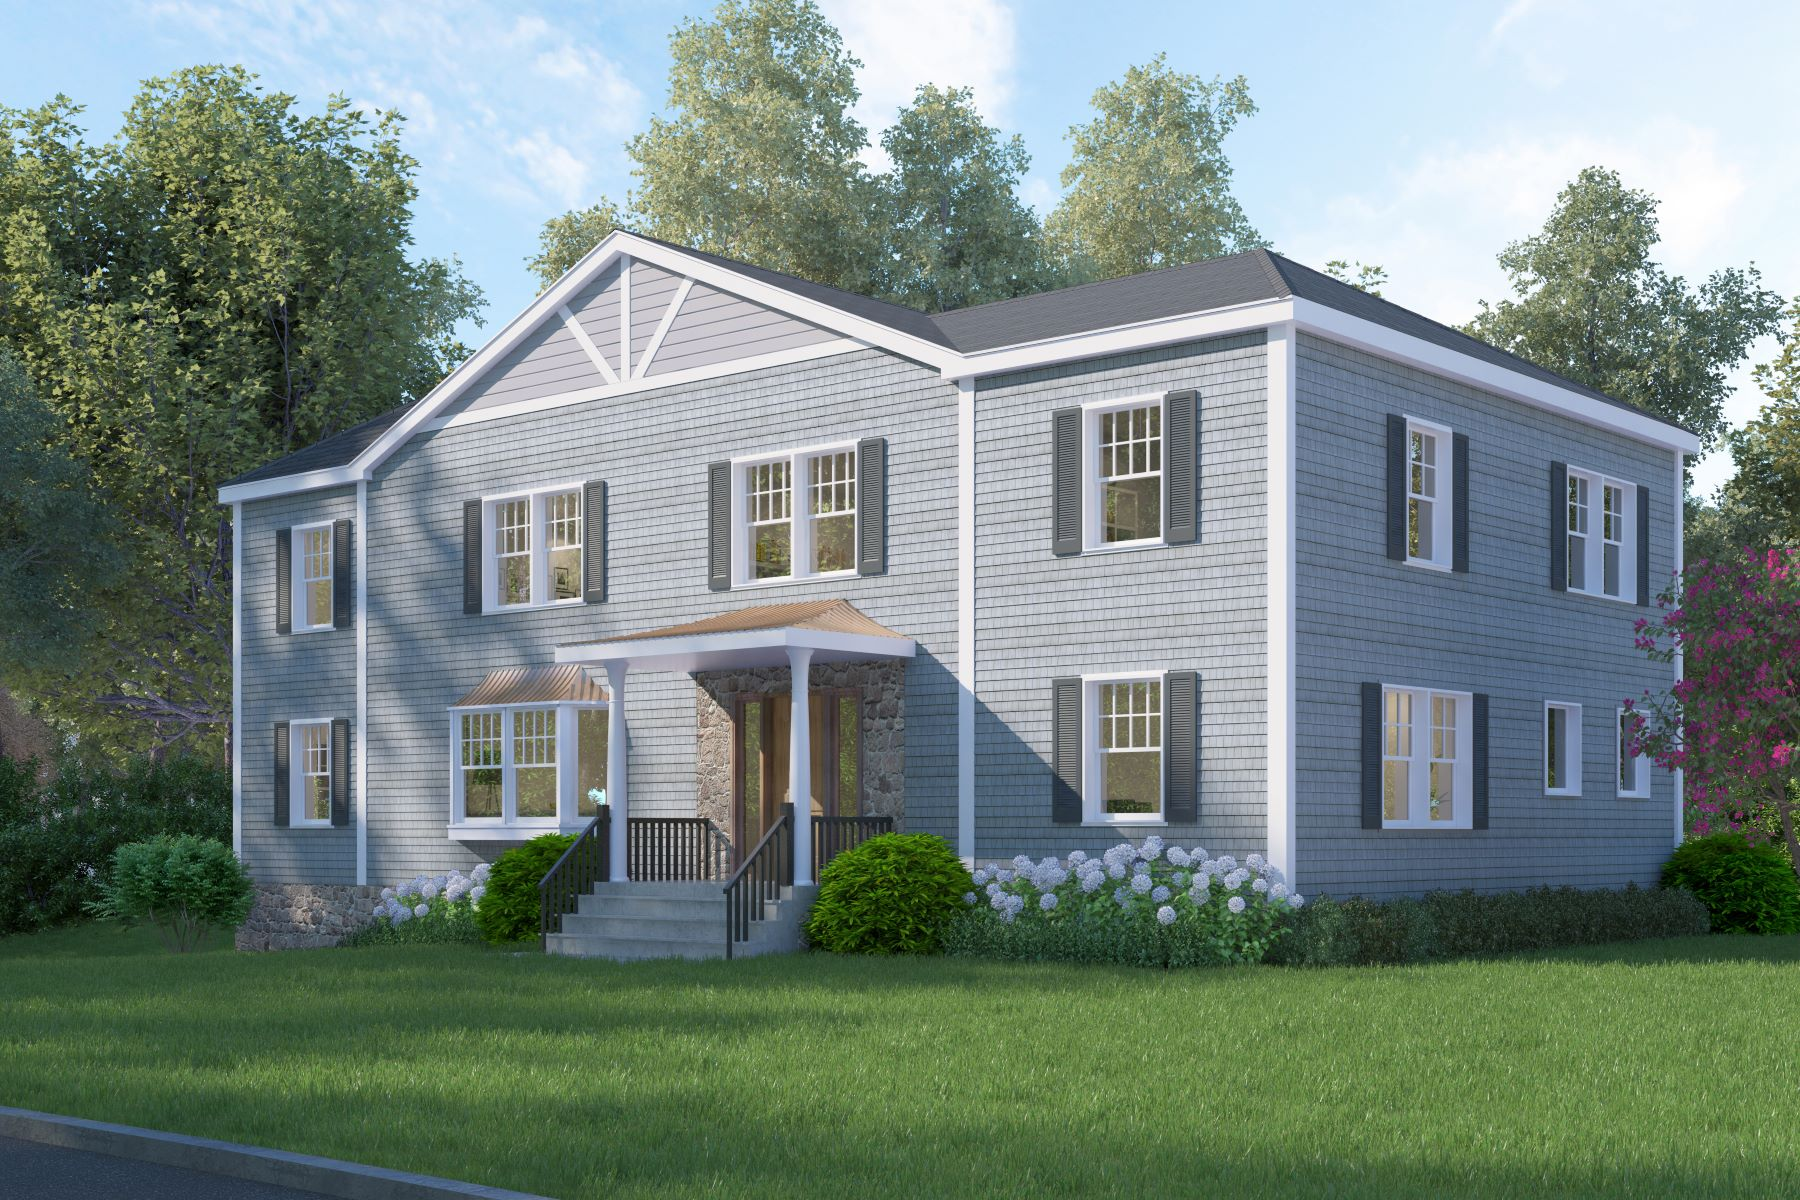 Single Family Homes for Sale at NEW CONSTRUCTION Center Hall Colonial 7 Shady Road Ardsley, New York 10502 United States